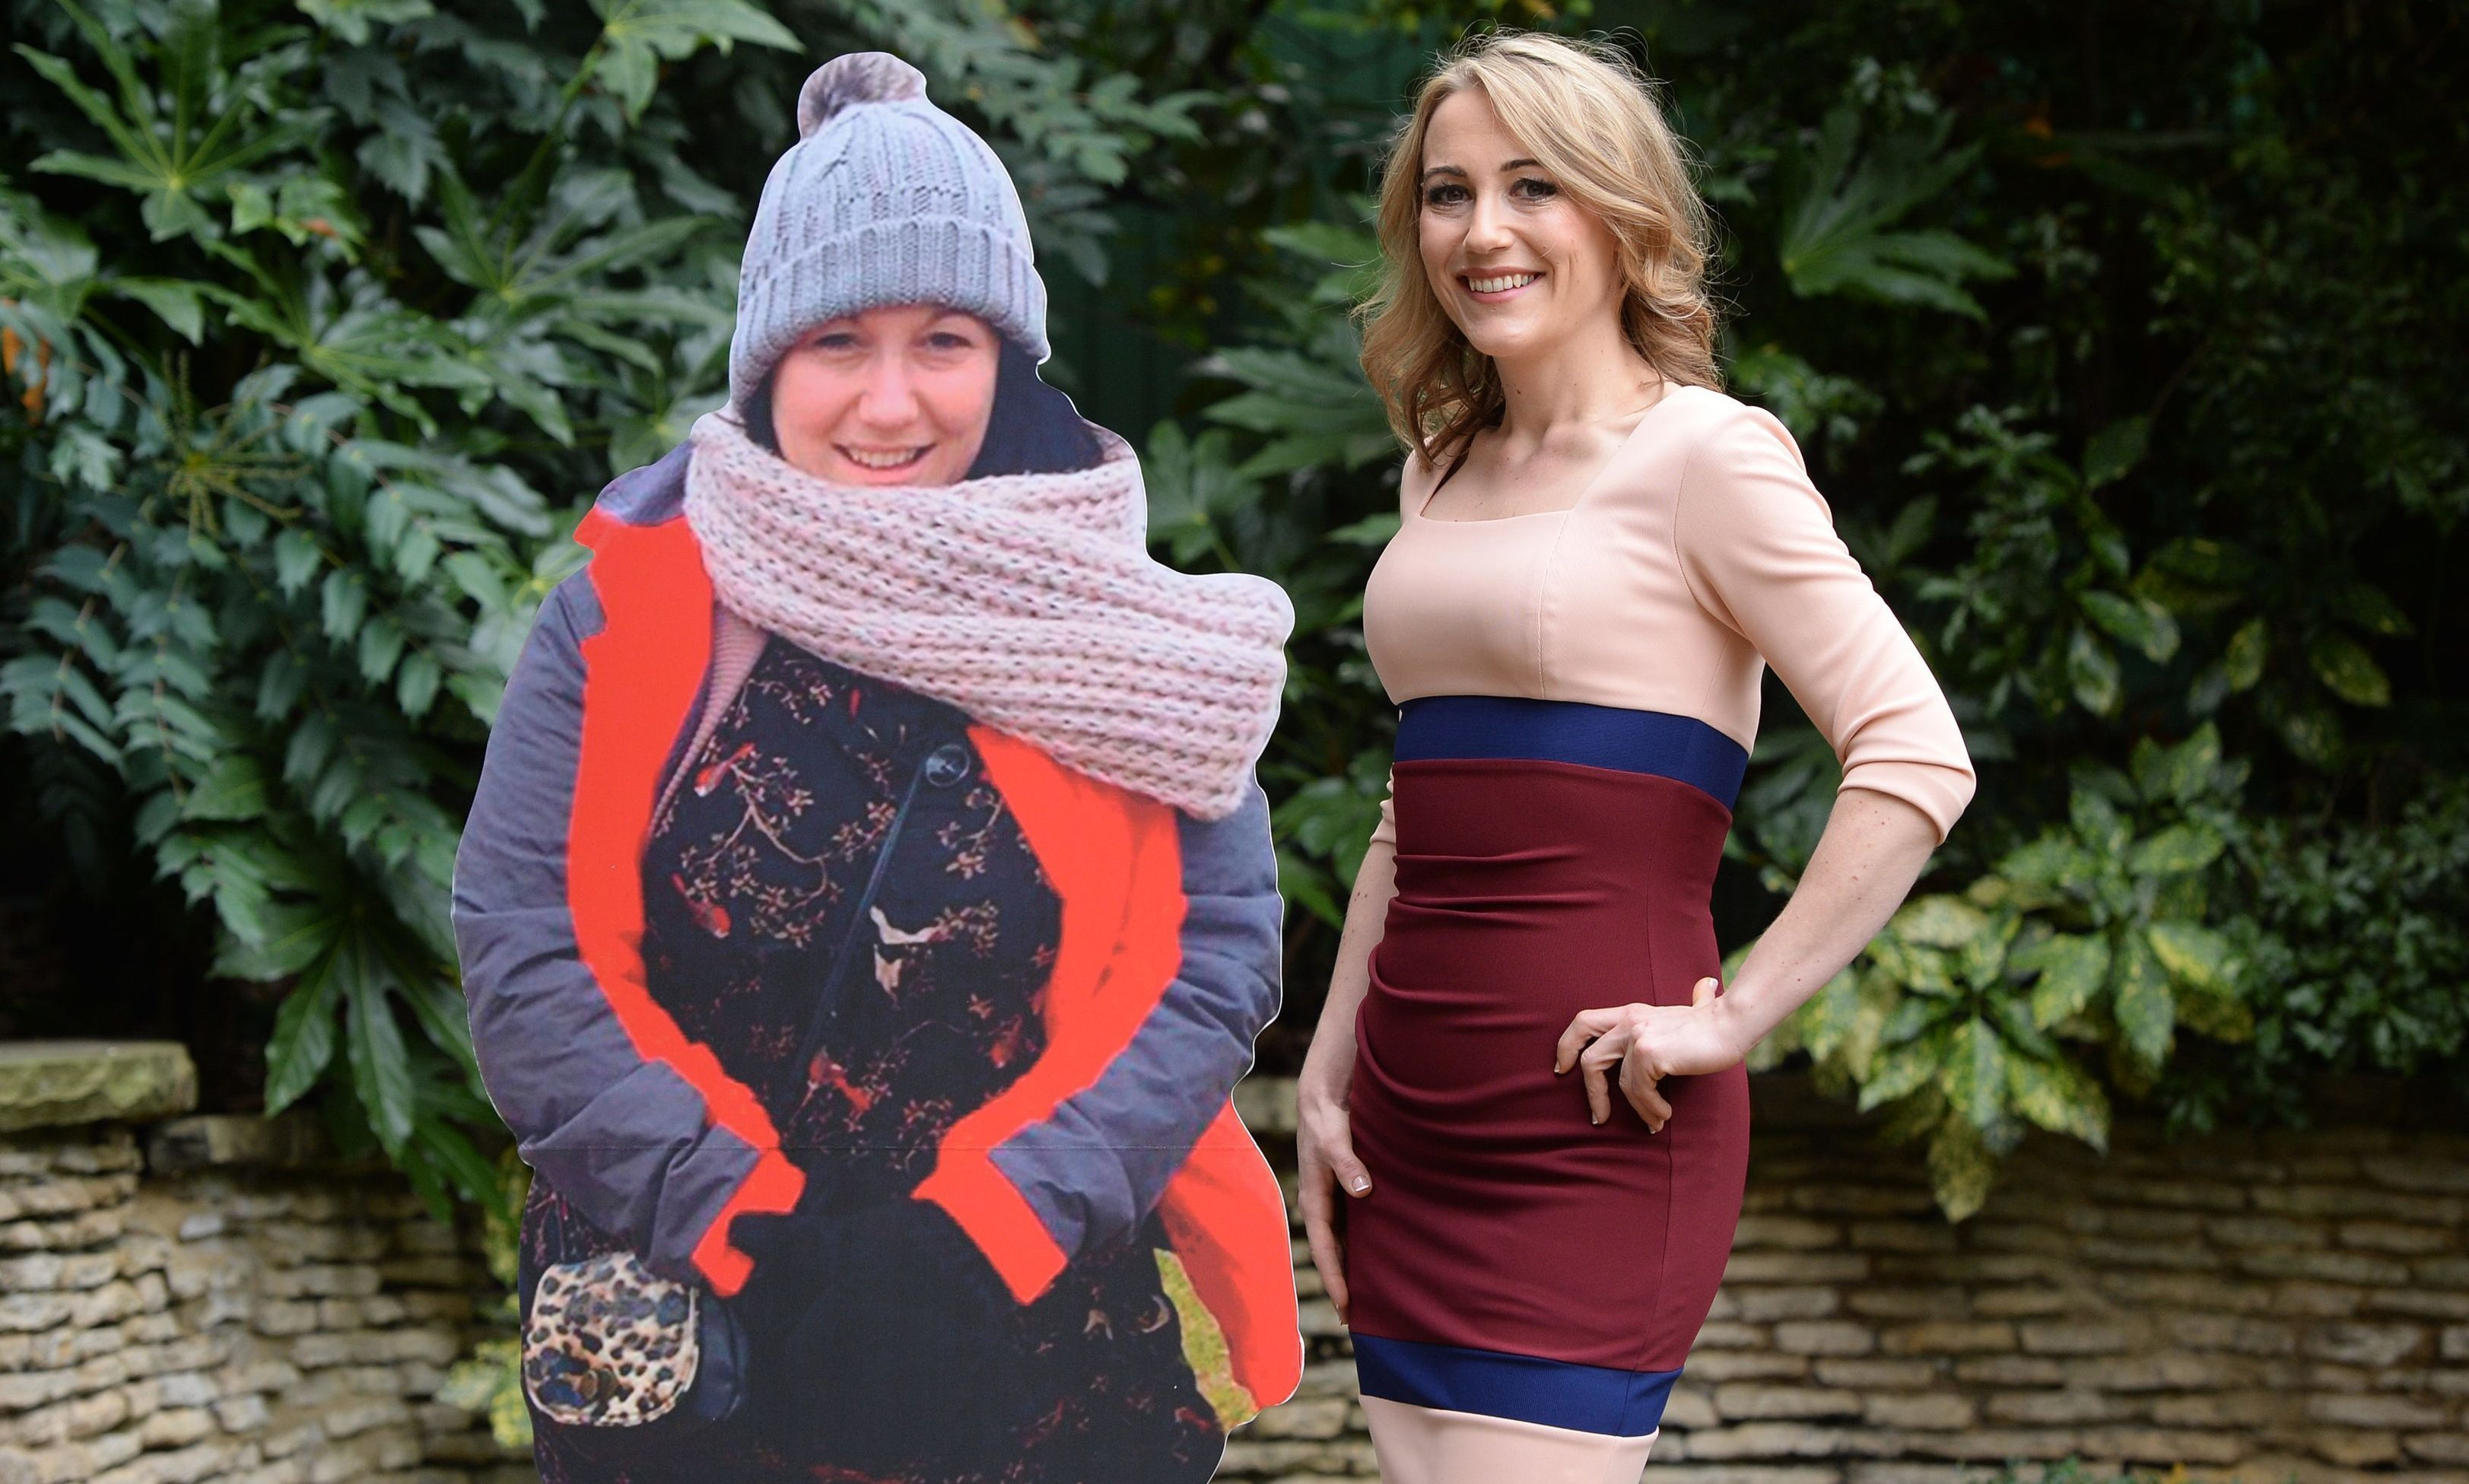 Hollie Barrett, 30, from Blunderston in Suffolk, poses with a cardboard cut-out of her former self.